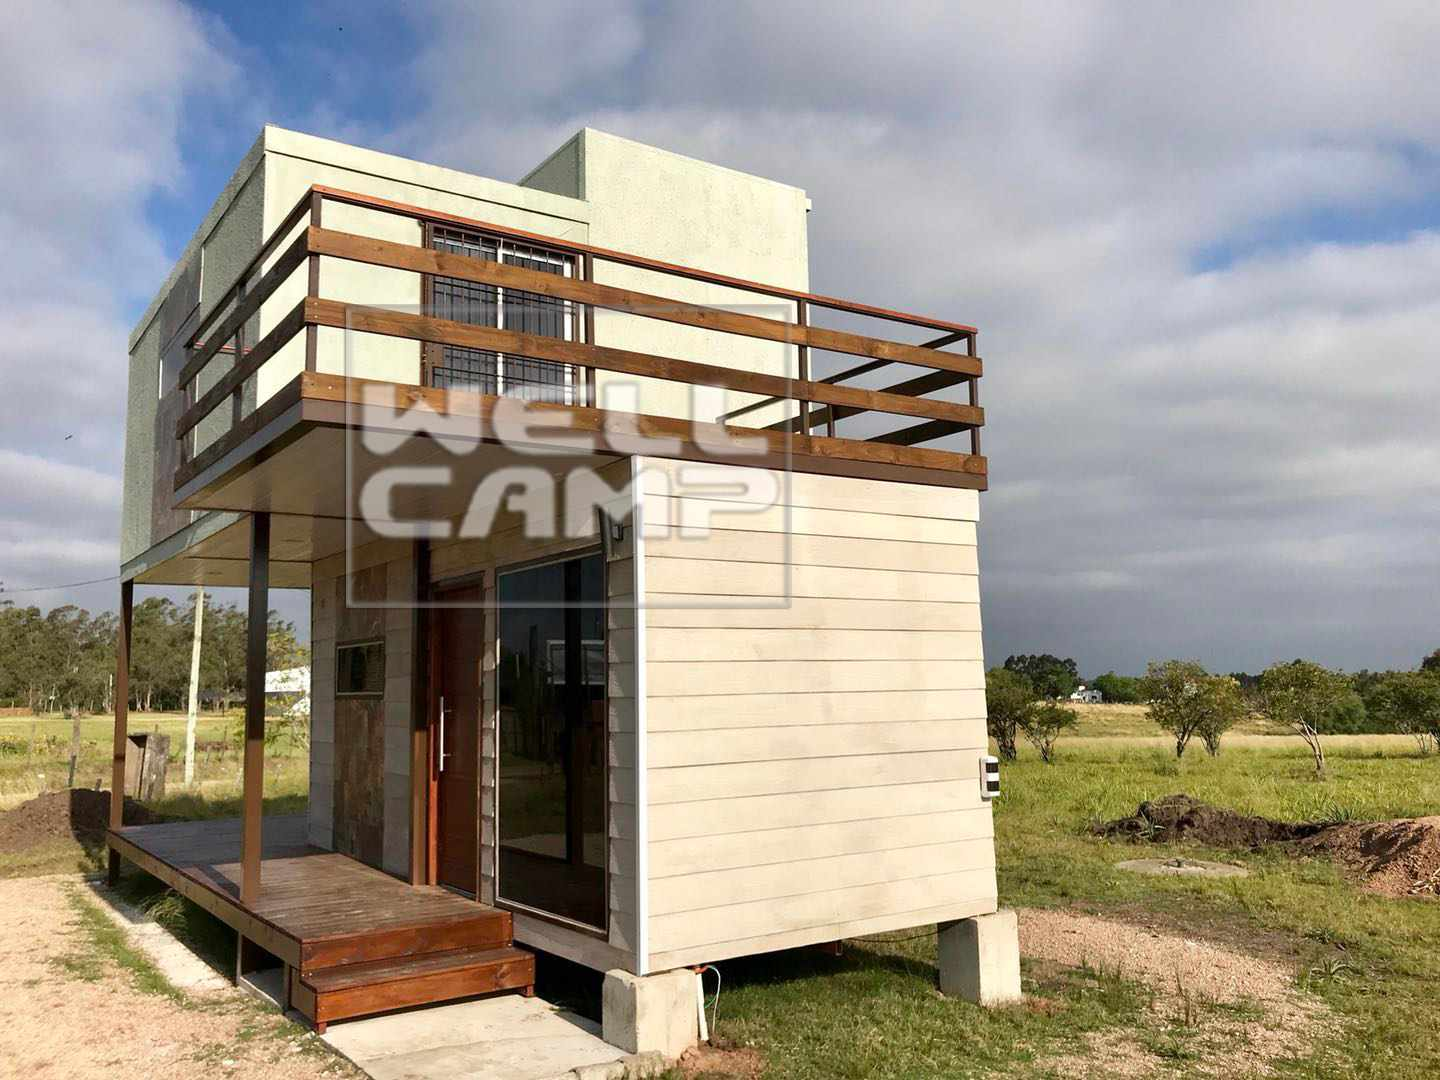 WELLCAMP Two Storey Sandwich Panel Foldable Container House for Holiday Resort  -F07 Folding Container House image53